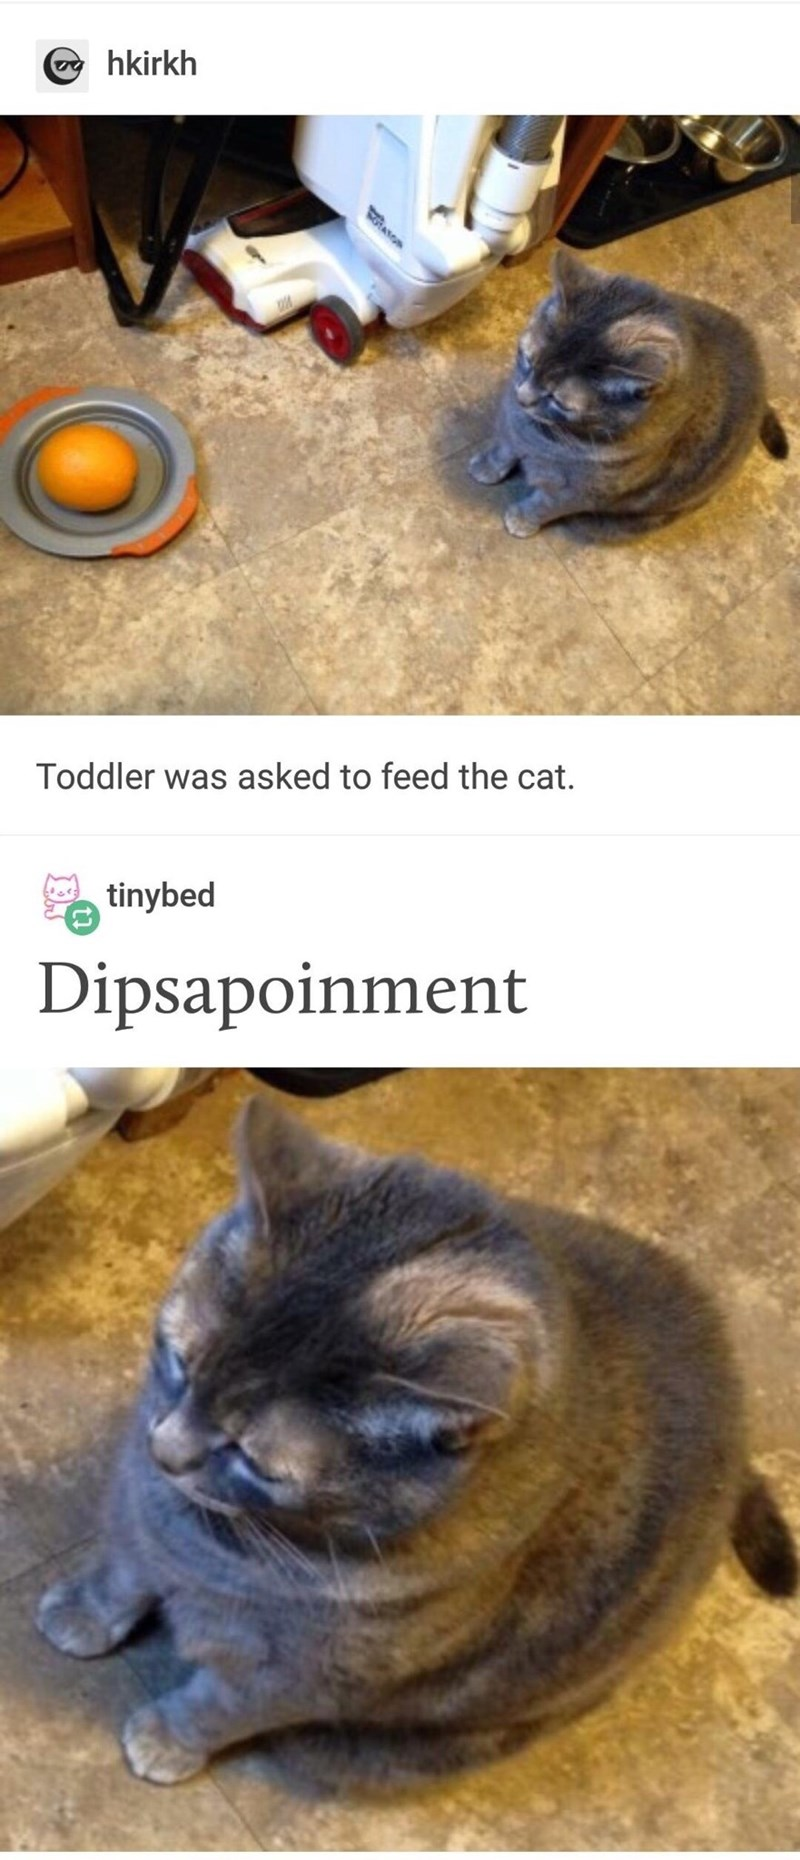 Cat - hkirkh AN Toddler was asked to feed the cat. tinybed Dipsapoinment